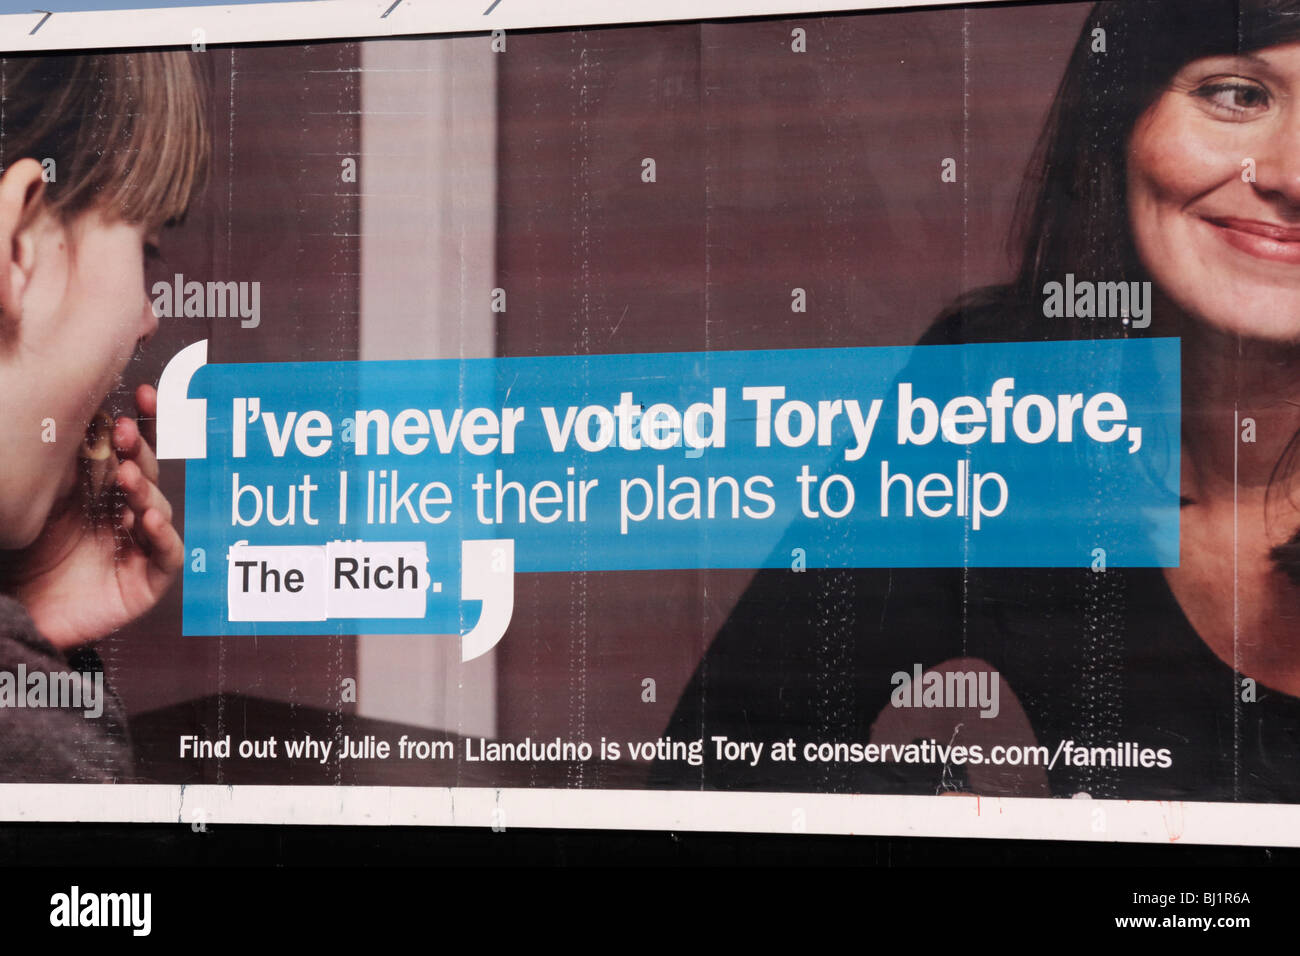 I've never voted Tory before but I like their plans to help families defaced to read 'help the rich' - Stock Image